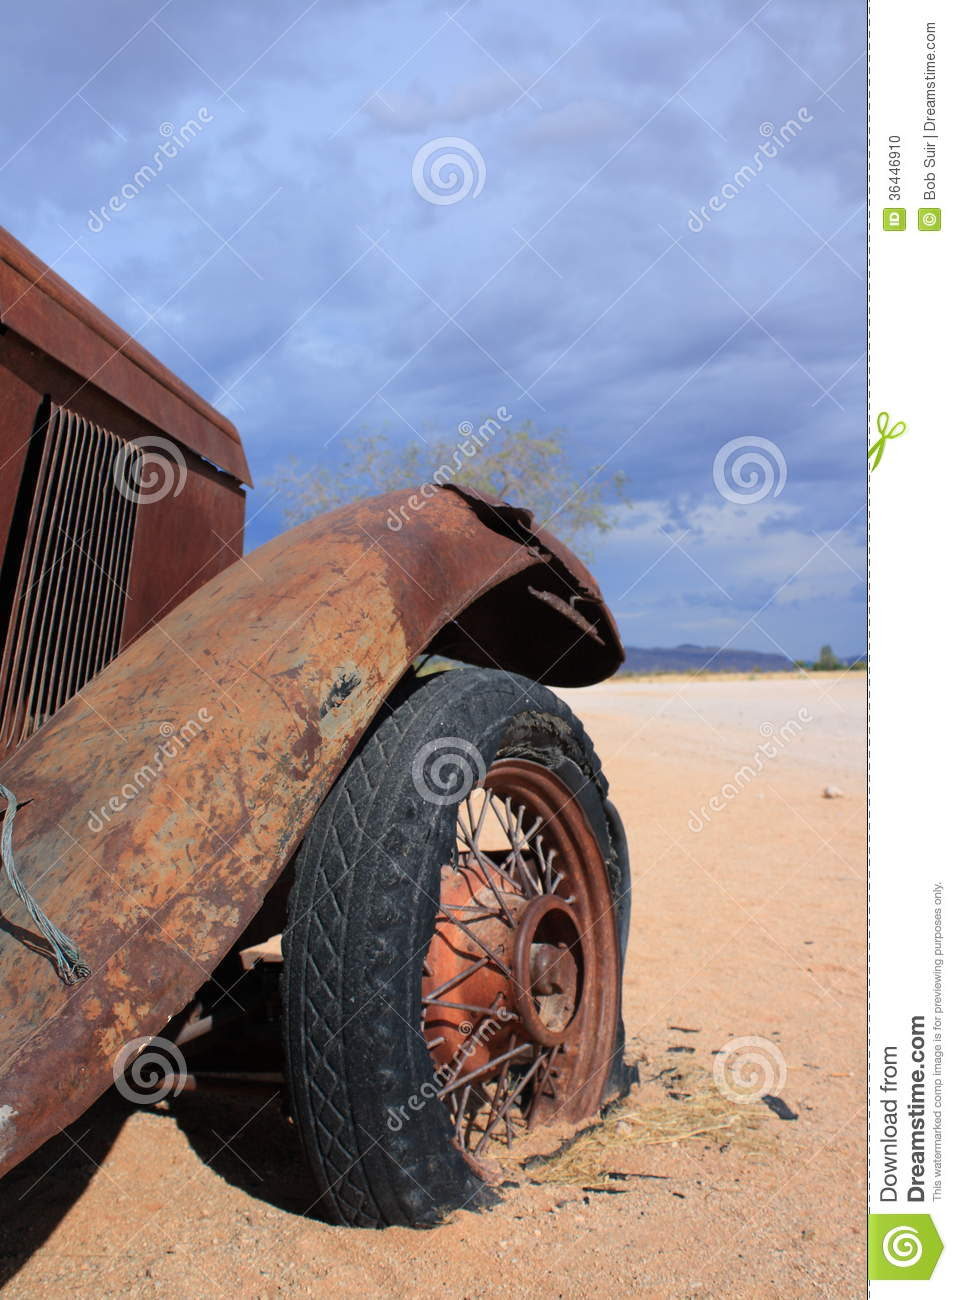 Abandoned Old Car With Flat Tire Stock Photo Image 36446910